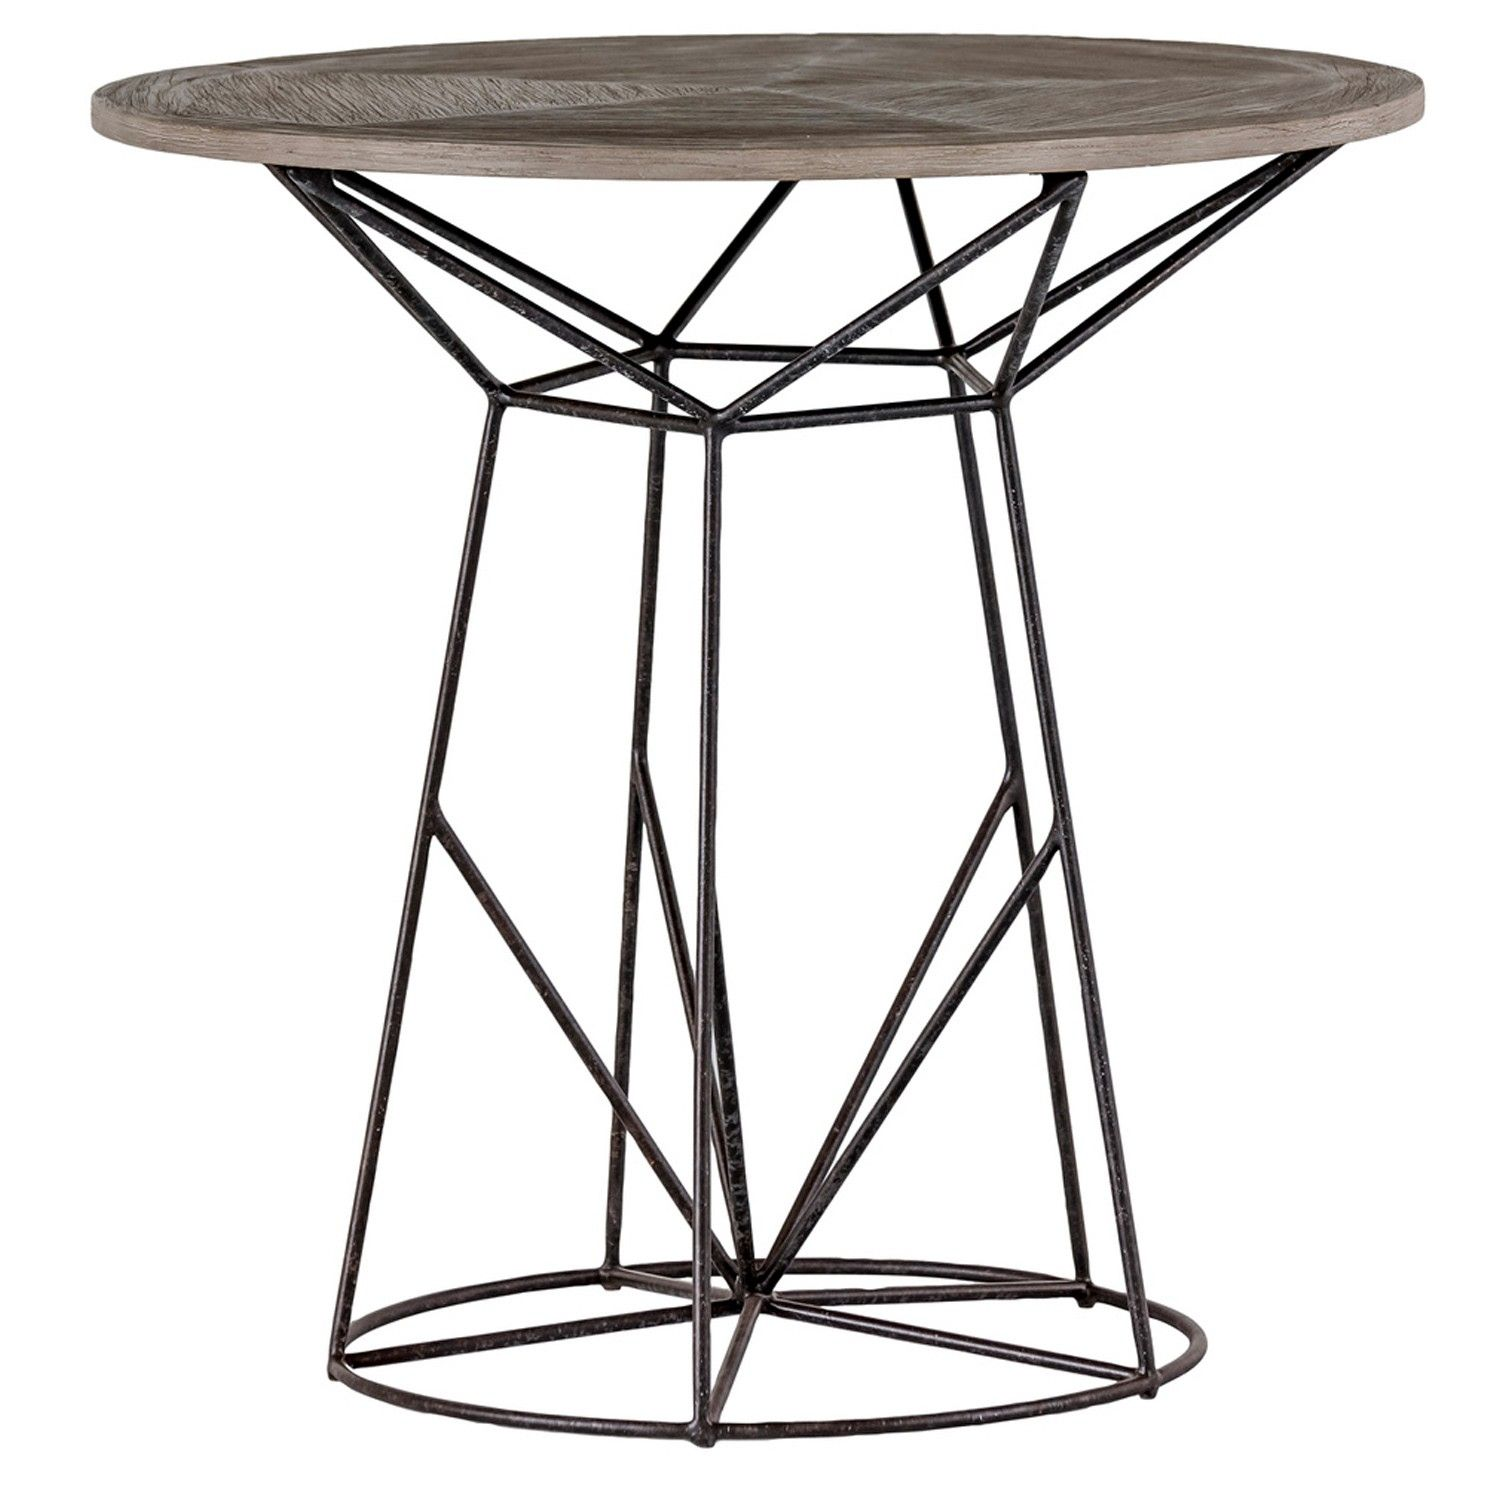 The charlie round wood and wire side table is a visual marvel in